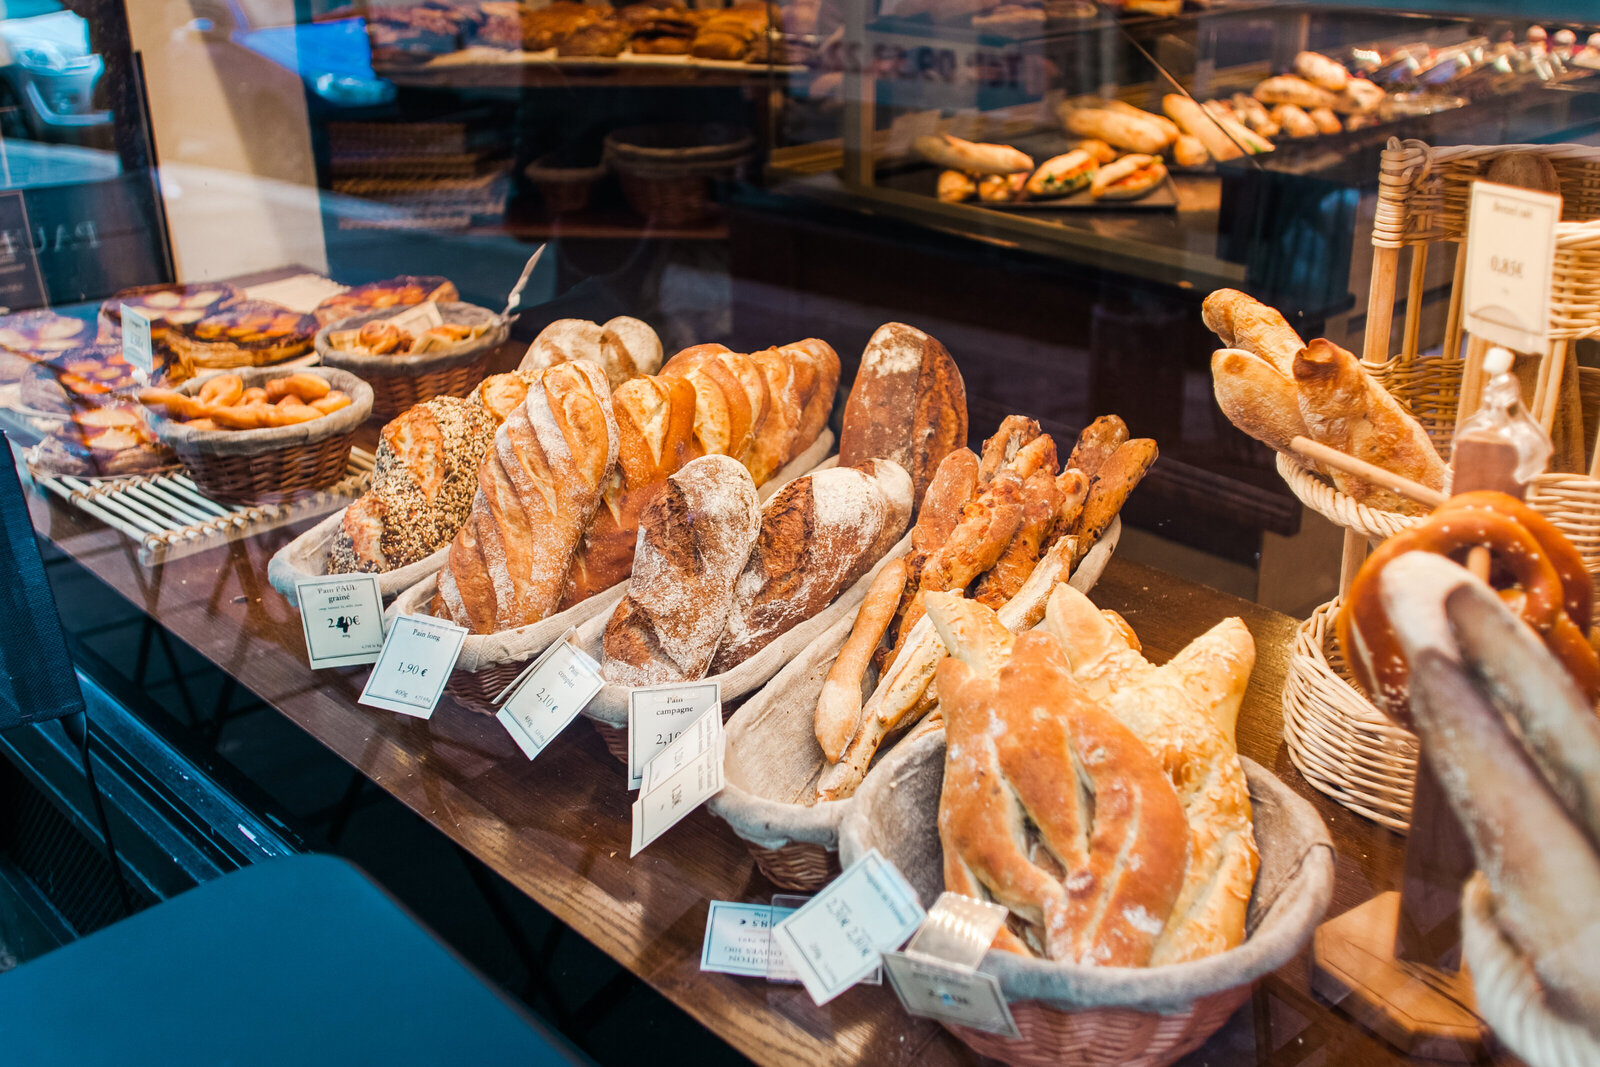 072-KBP-fresh-bread-Paris-France